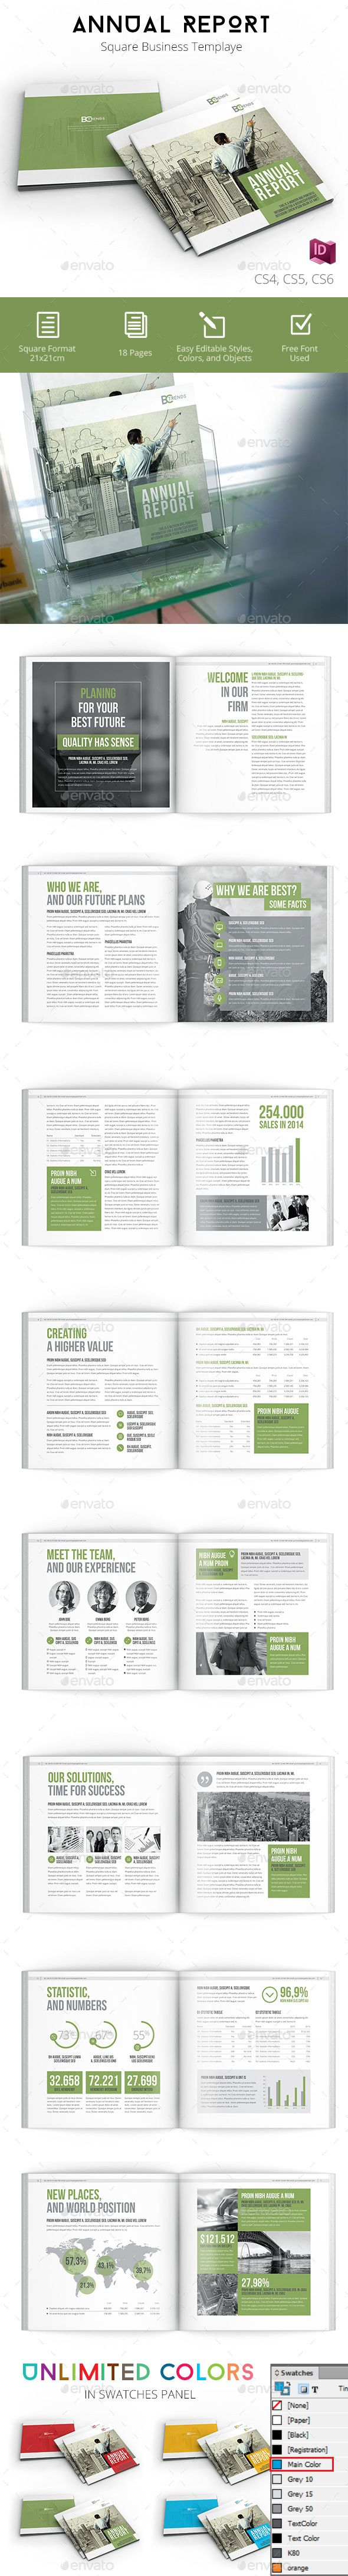 Annual Report 2017 Clean and Modern Square Brochure Template InDesign INDD